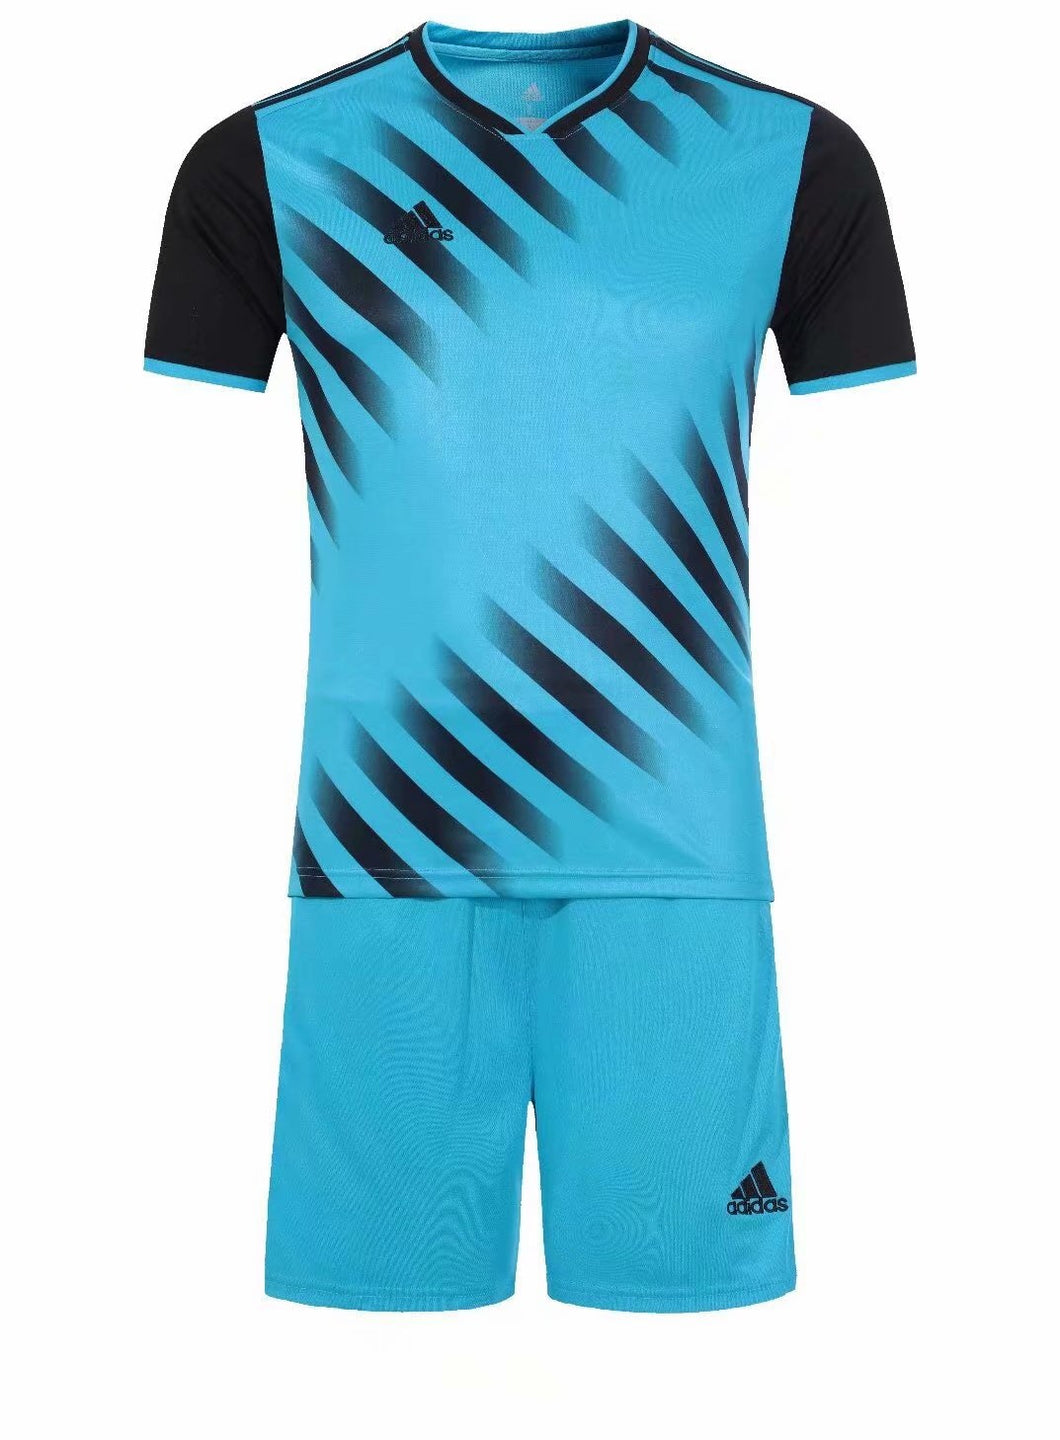 Adidas Full Football Kit Adult Sizes only - Light Blue and Black with Faded stripe